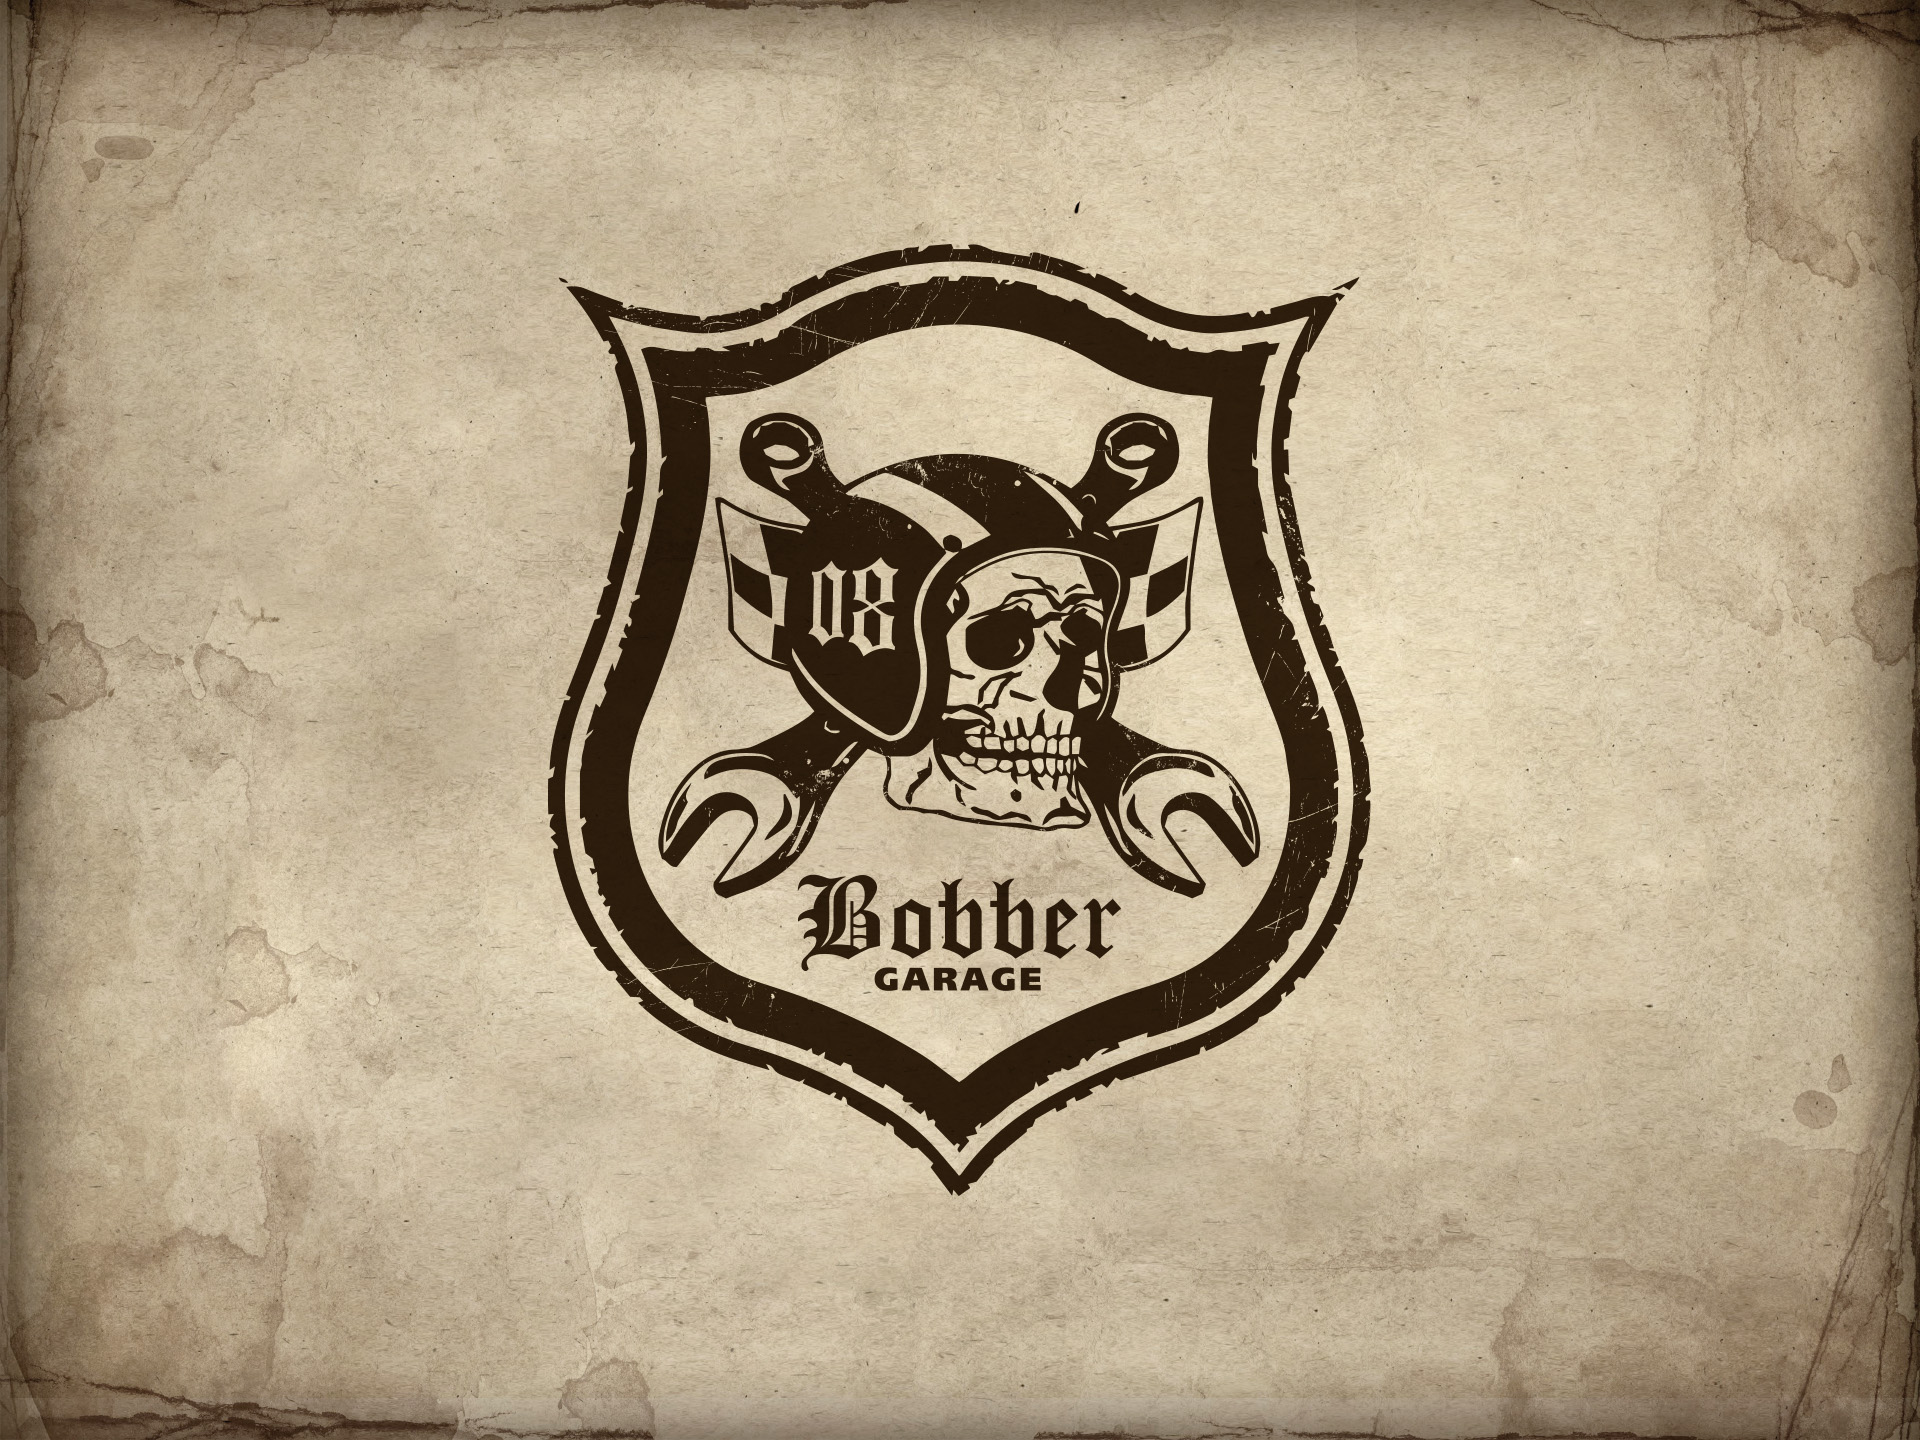 SM Graphic Design Referenzen  Bobber Garage Logo Signet 2017